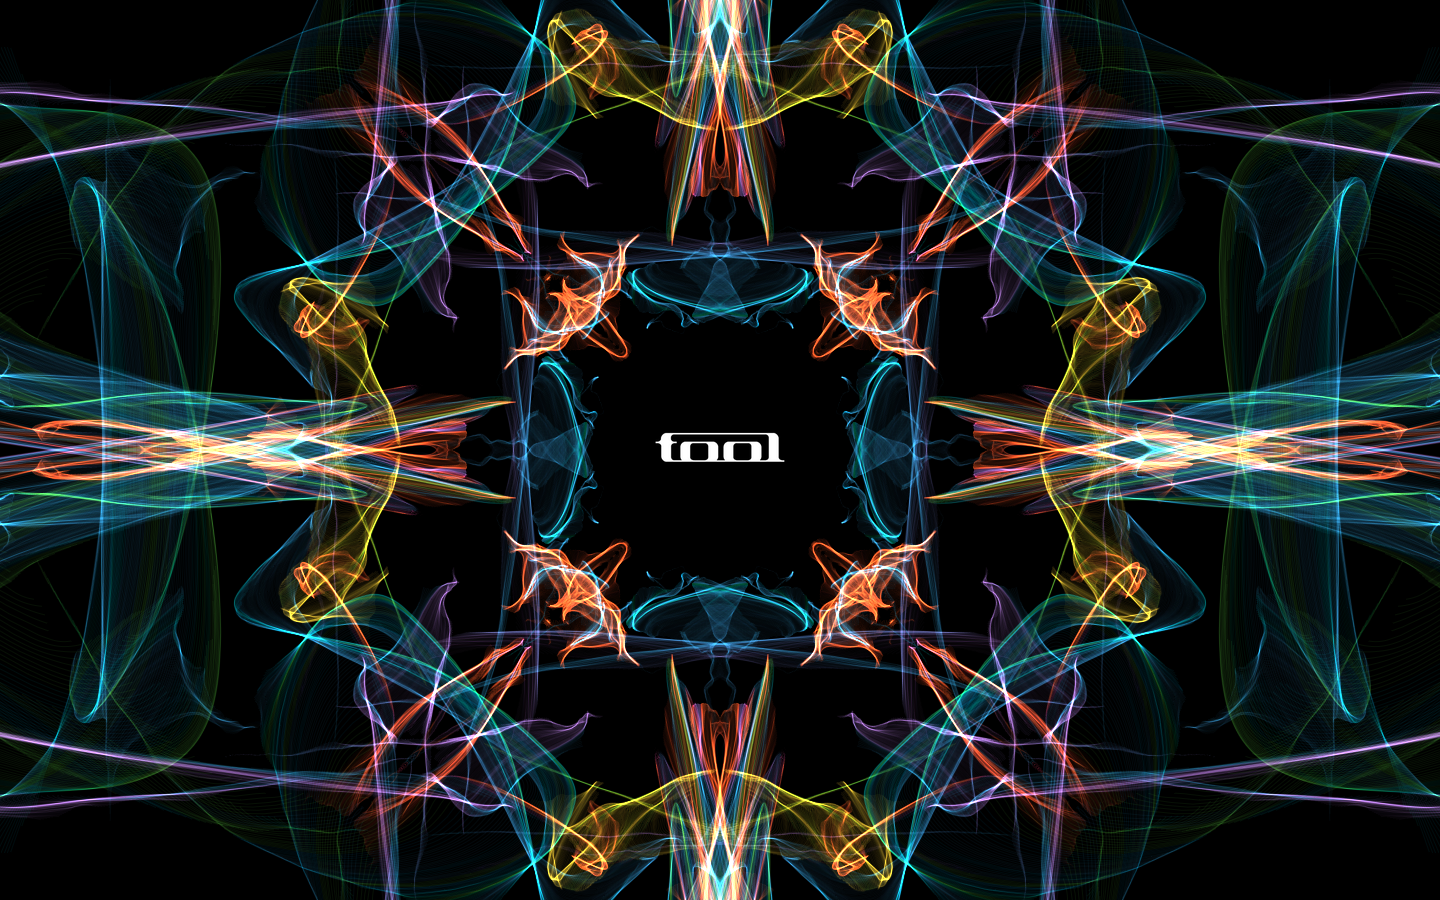 Tool Wallpaper And Background Image 1440x900 Id 401490